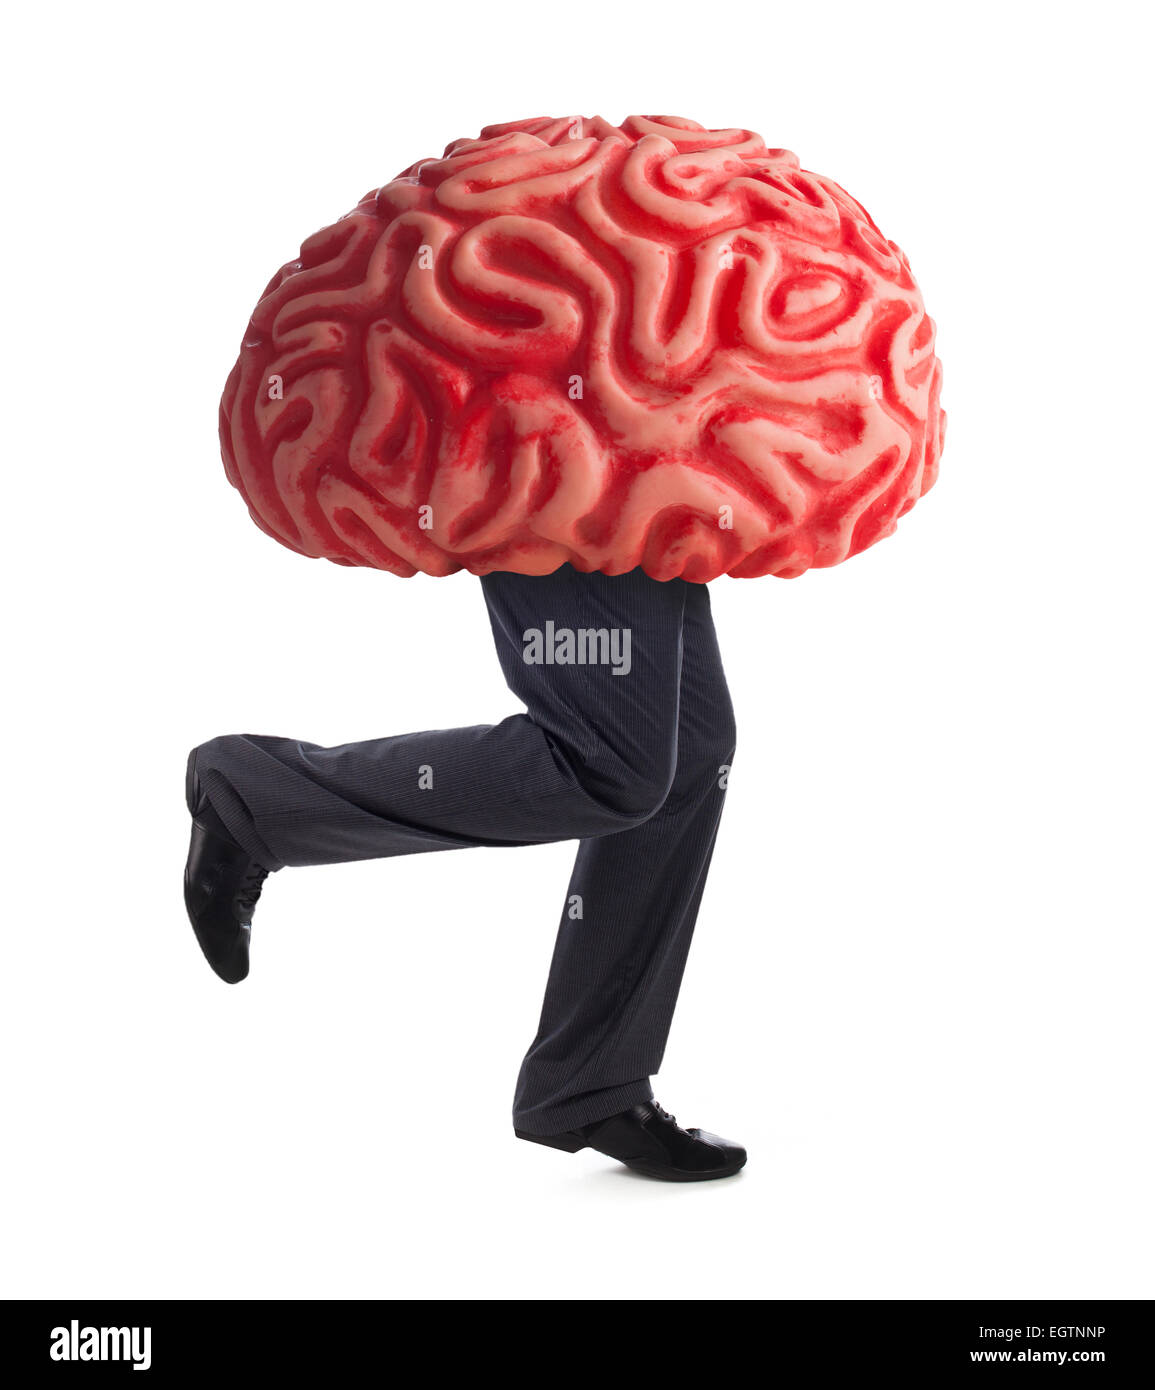 Metaphor of the brain drain. Rubber brain legs while running on white background. Stock Photo